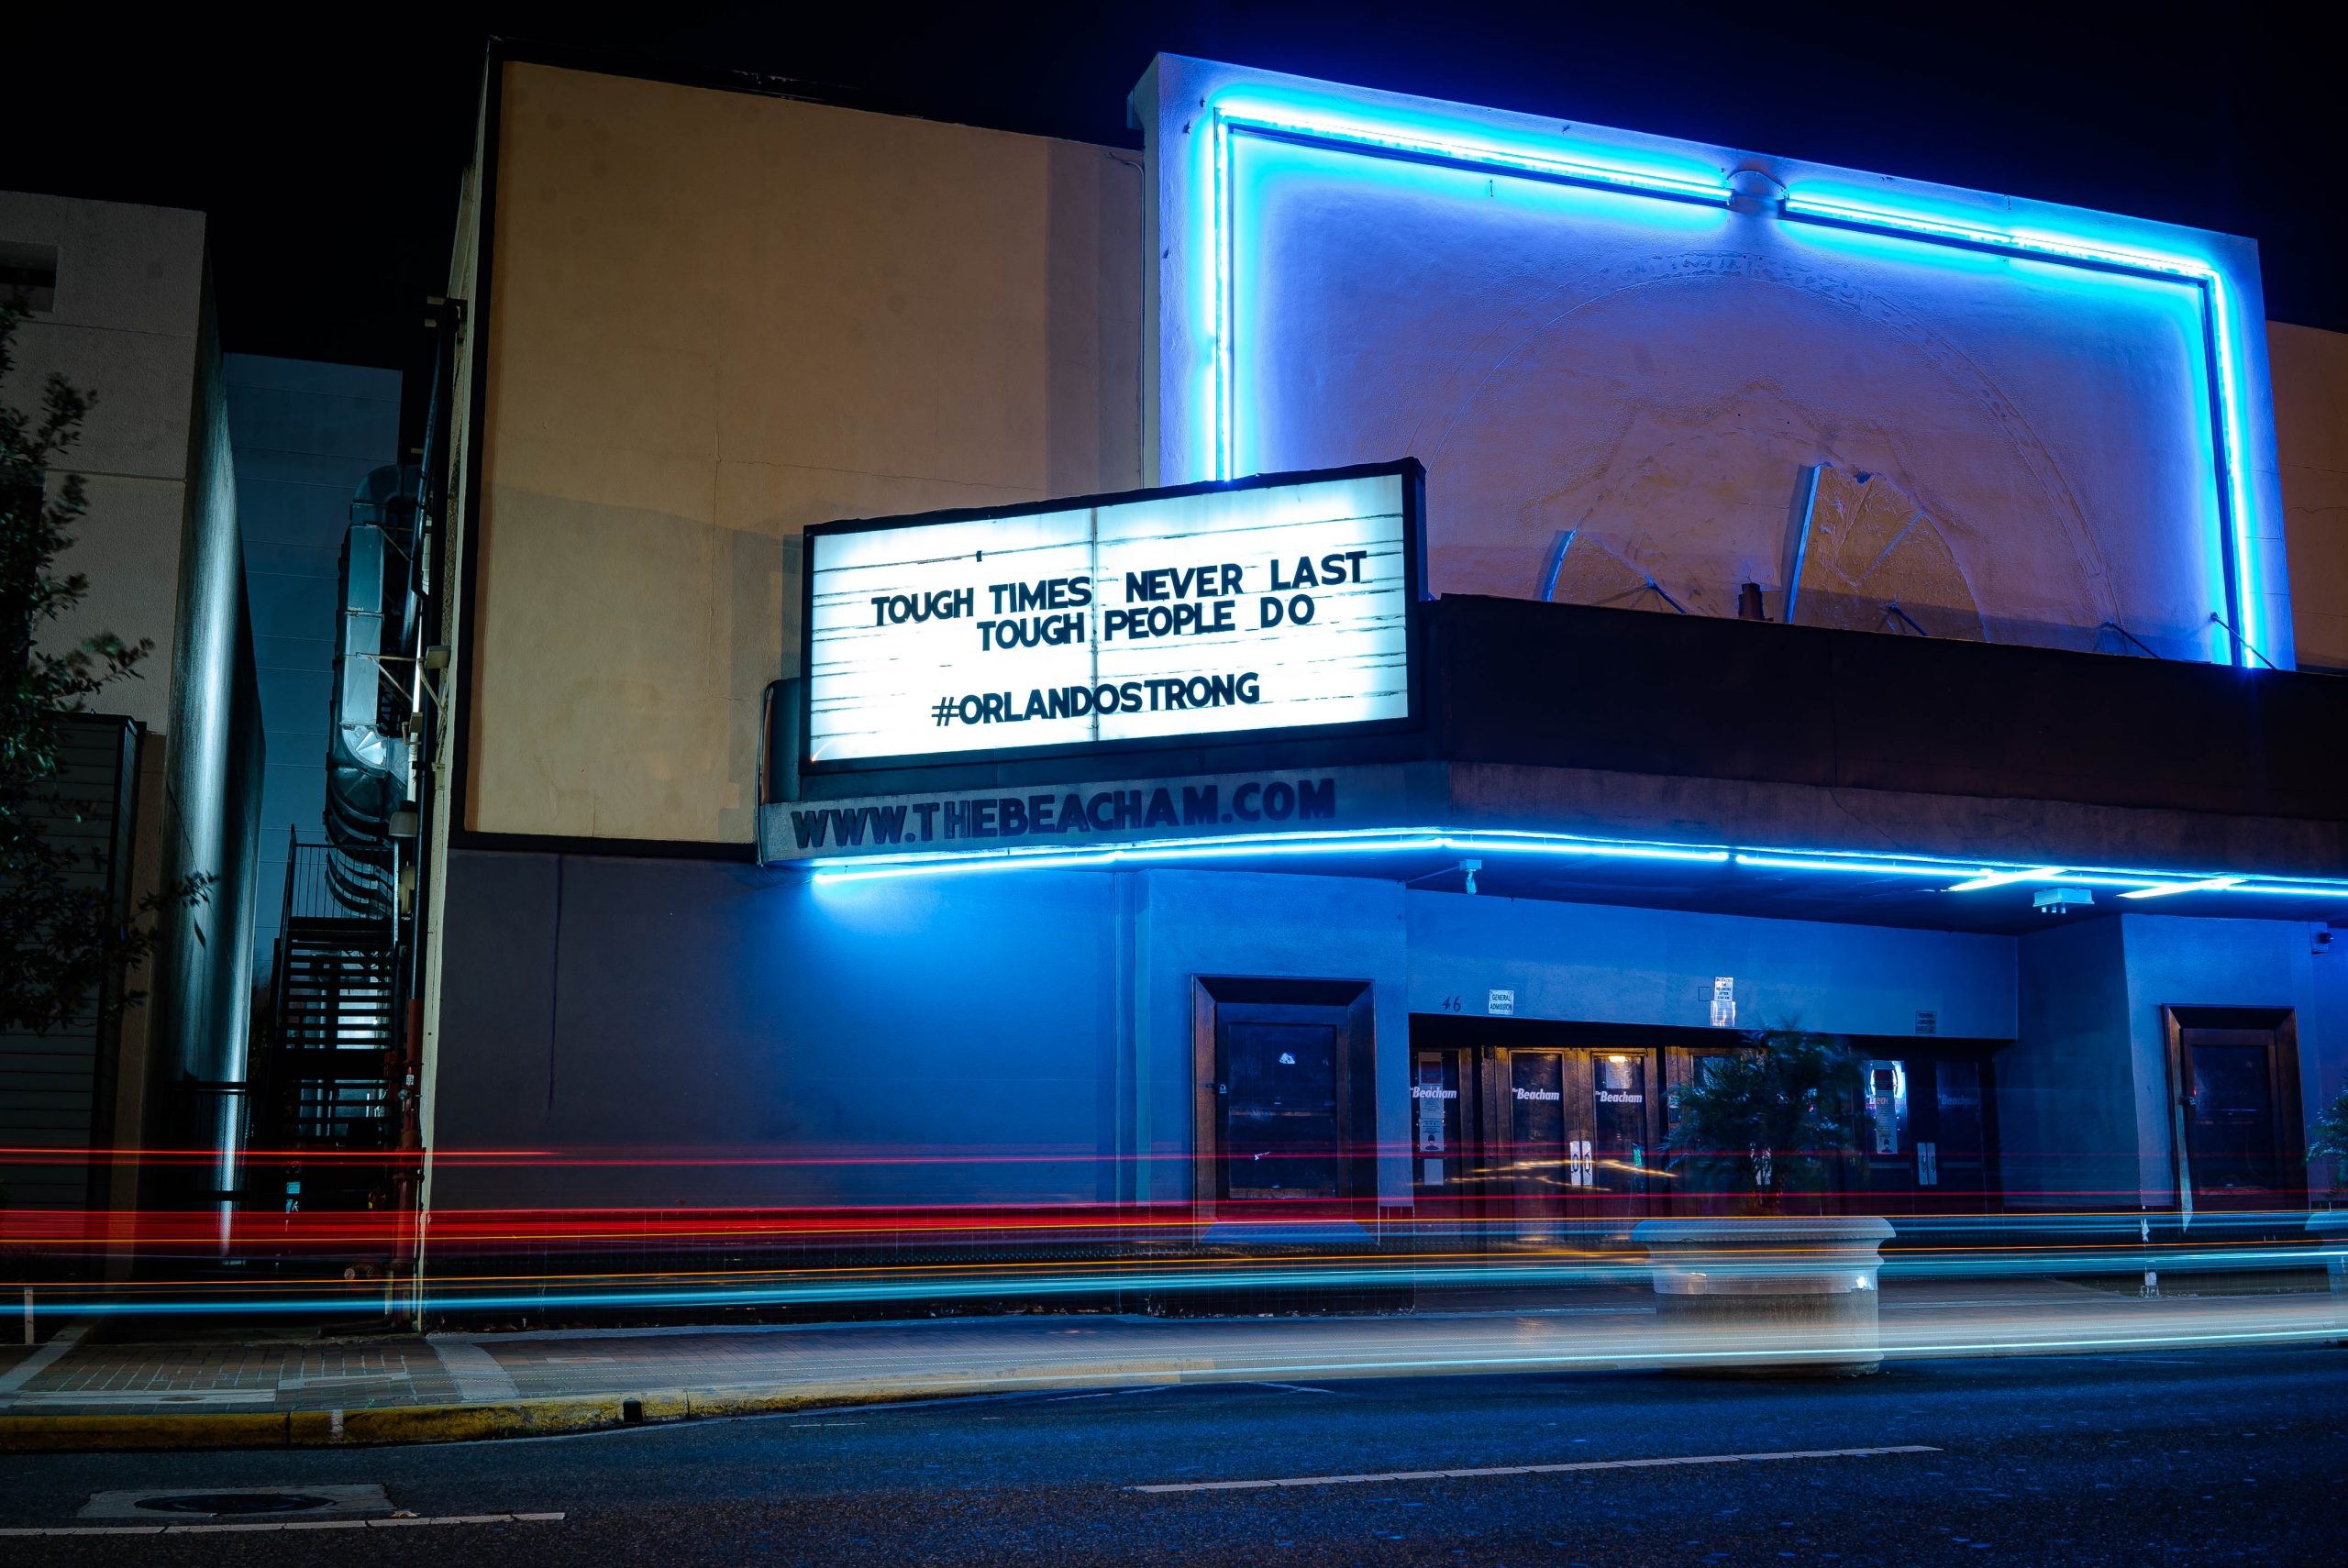 Tail lights streak past this night time photograph of a run down theatre, blue lights illuminate the doors, and a billboard above reads 'tough times don't last, tough people do' hashtag Orlando strong' How tough would they be if they new the ghosts under their feet.